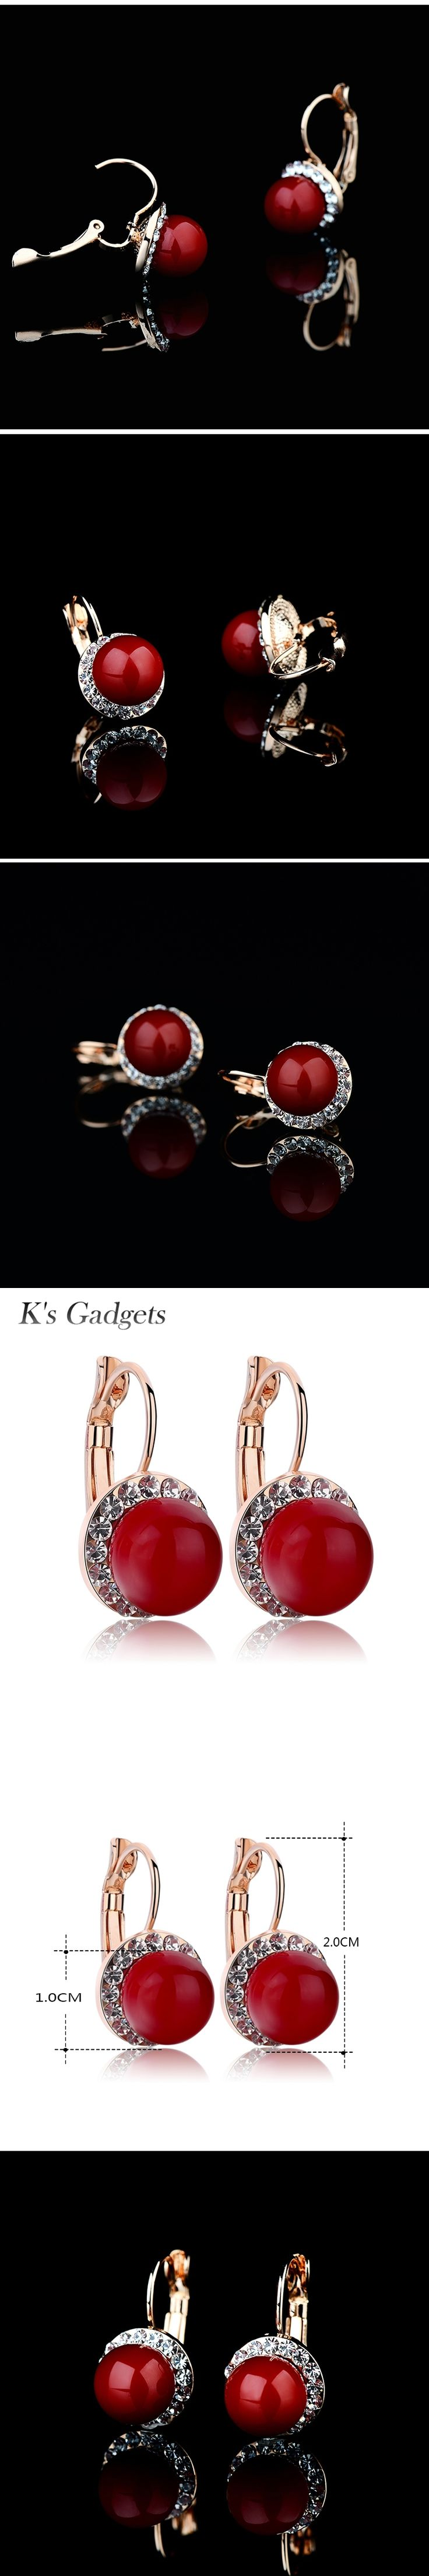 K'S Gadgets Rose Gold Color Artificial Coral Earrings  Buckle Rhinestone Earring Natural Stone Stud Women Crystal Coral Earrings